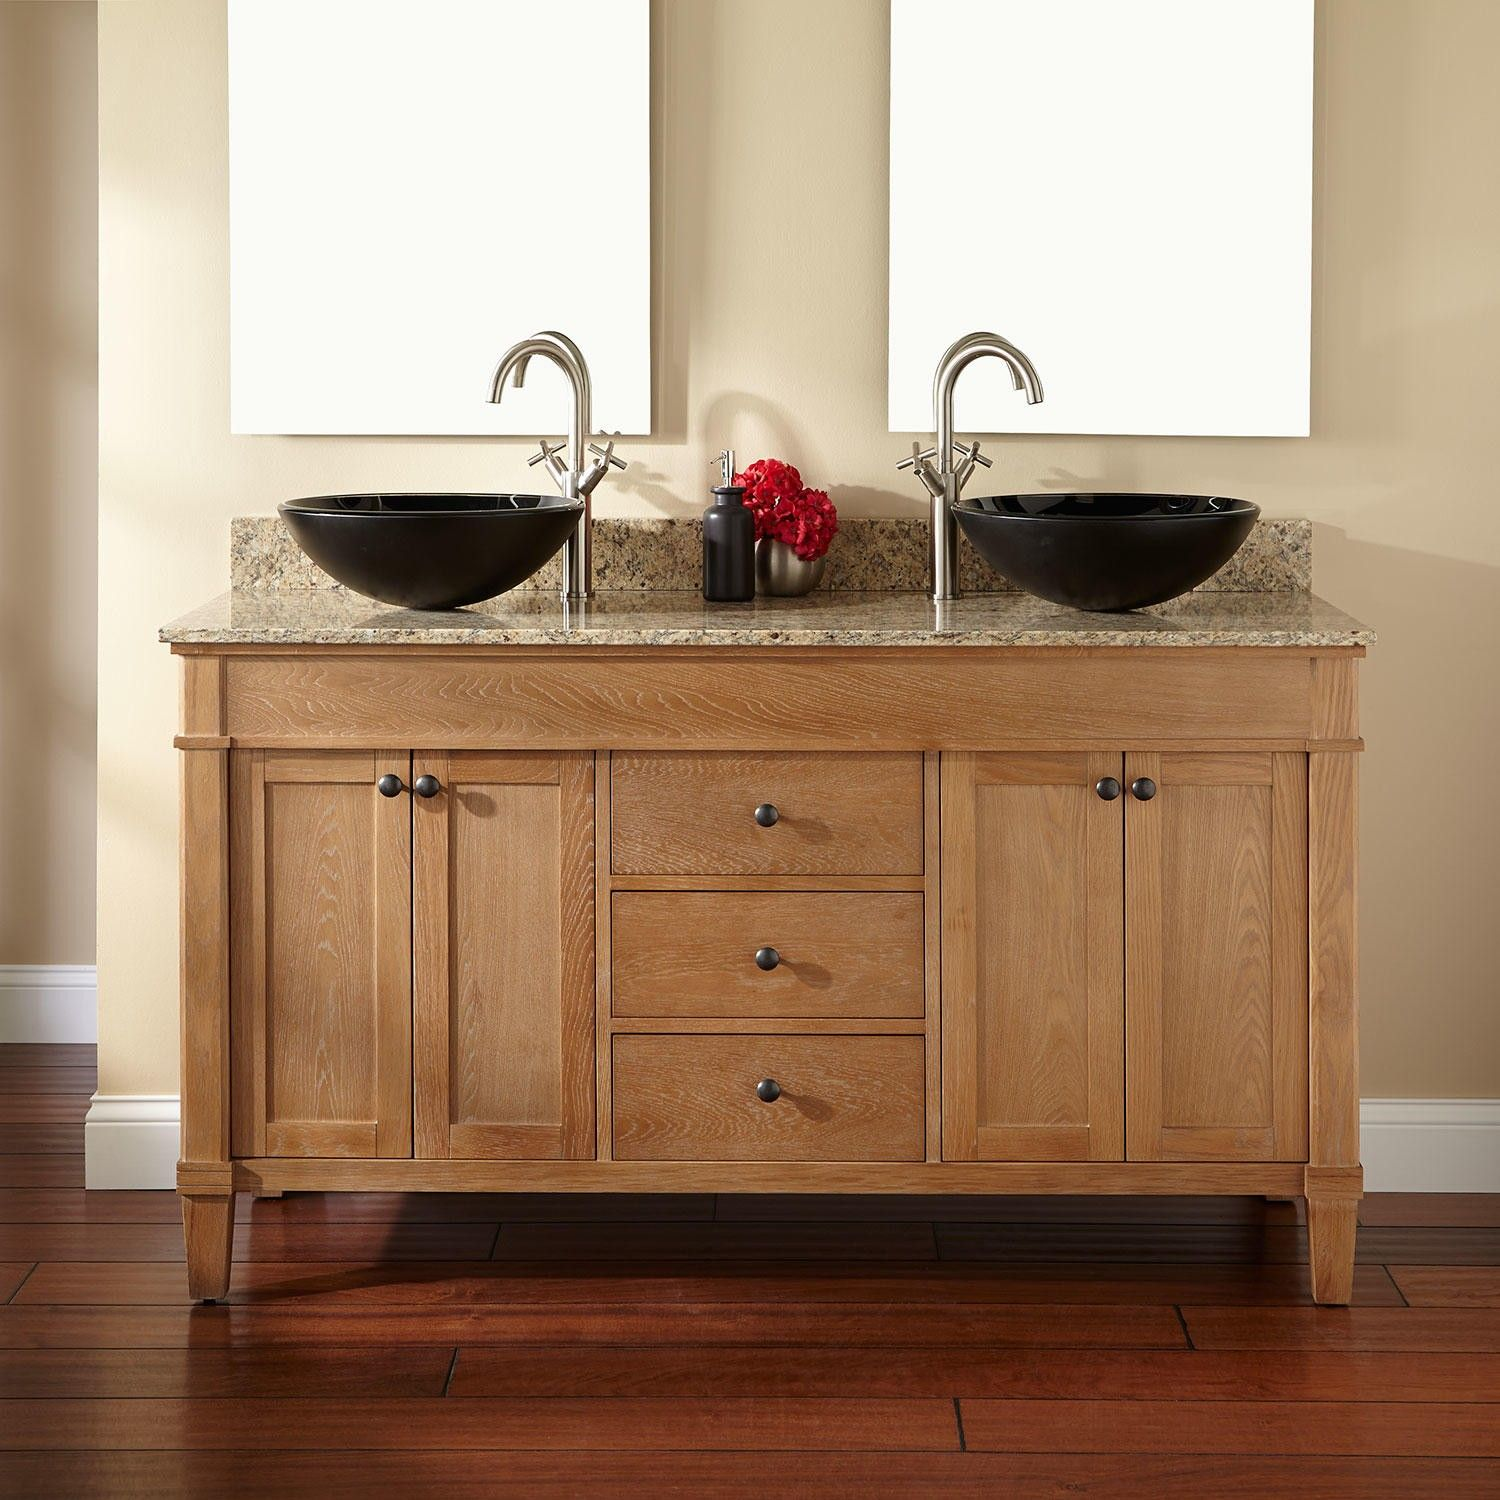 60 Marilla Double Vessel Sink Vanity With Images Wooden